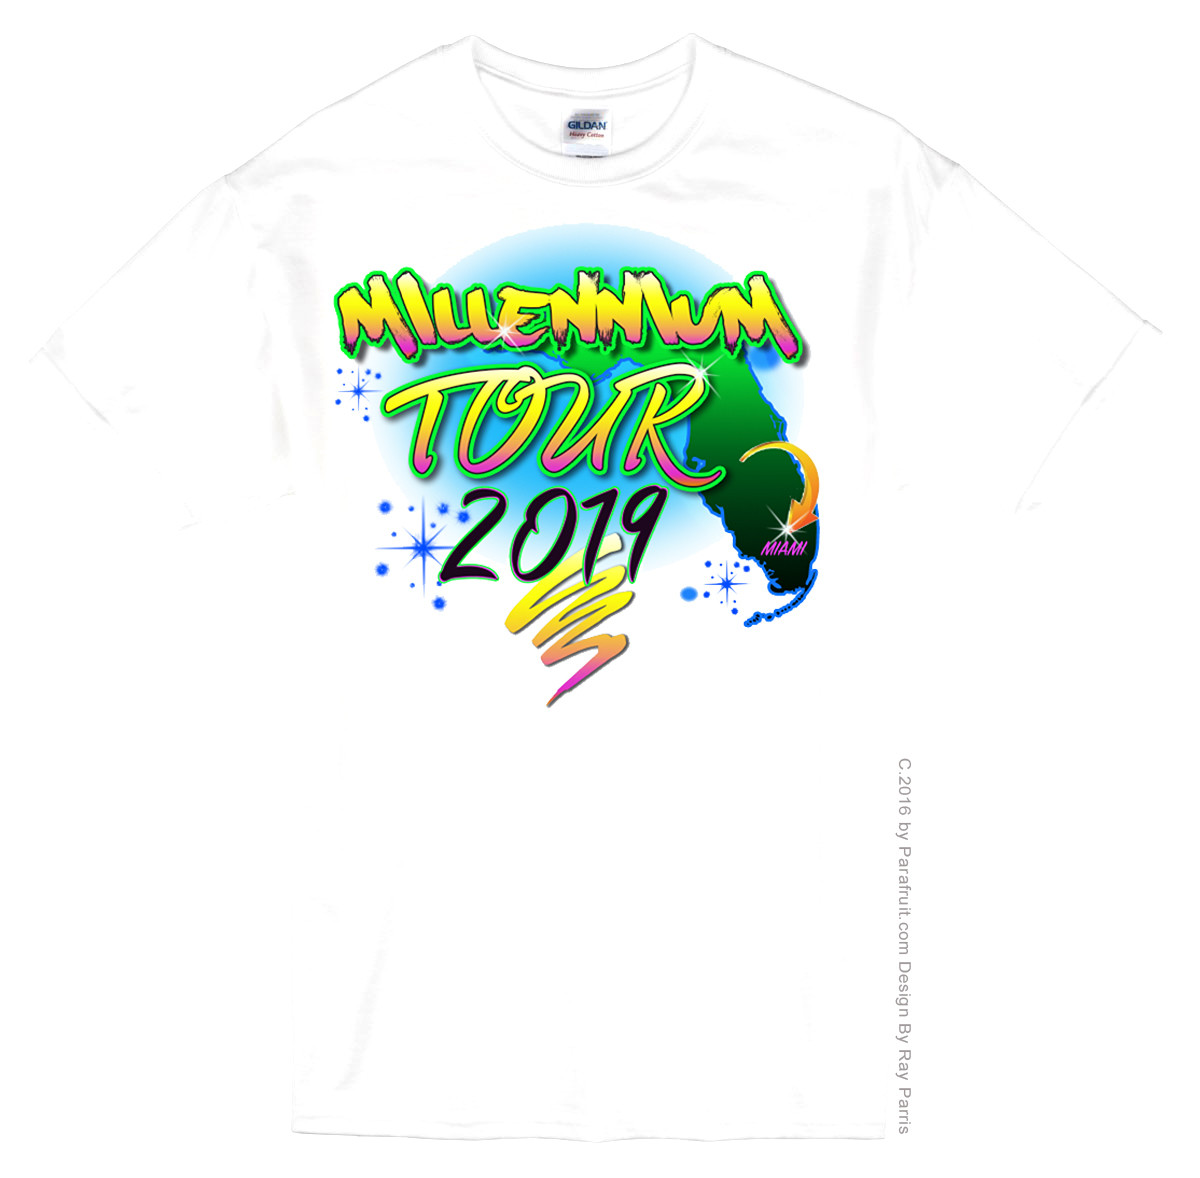 Airbrush Miami Tour